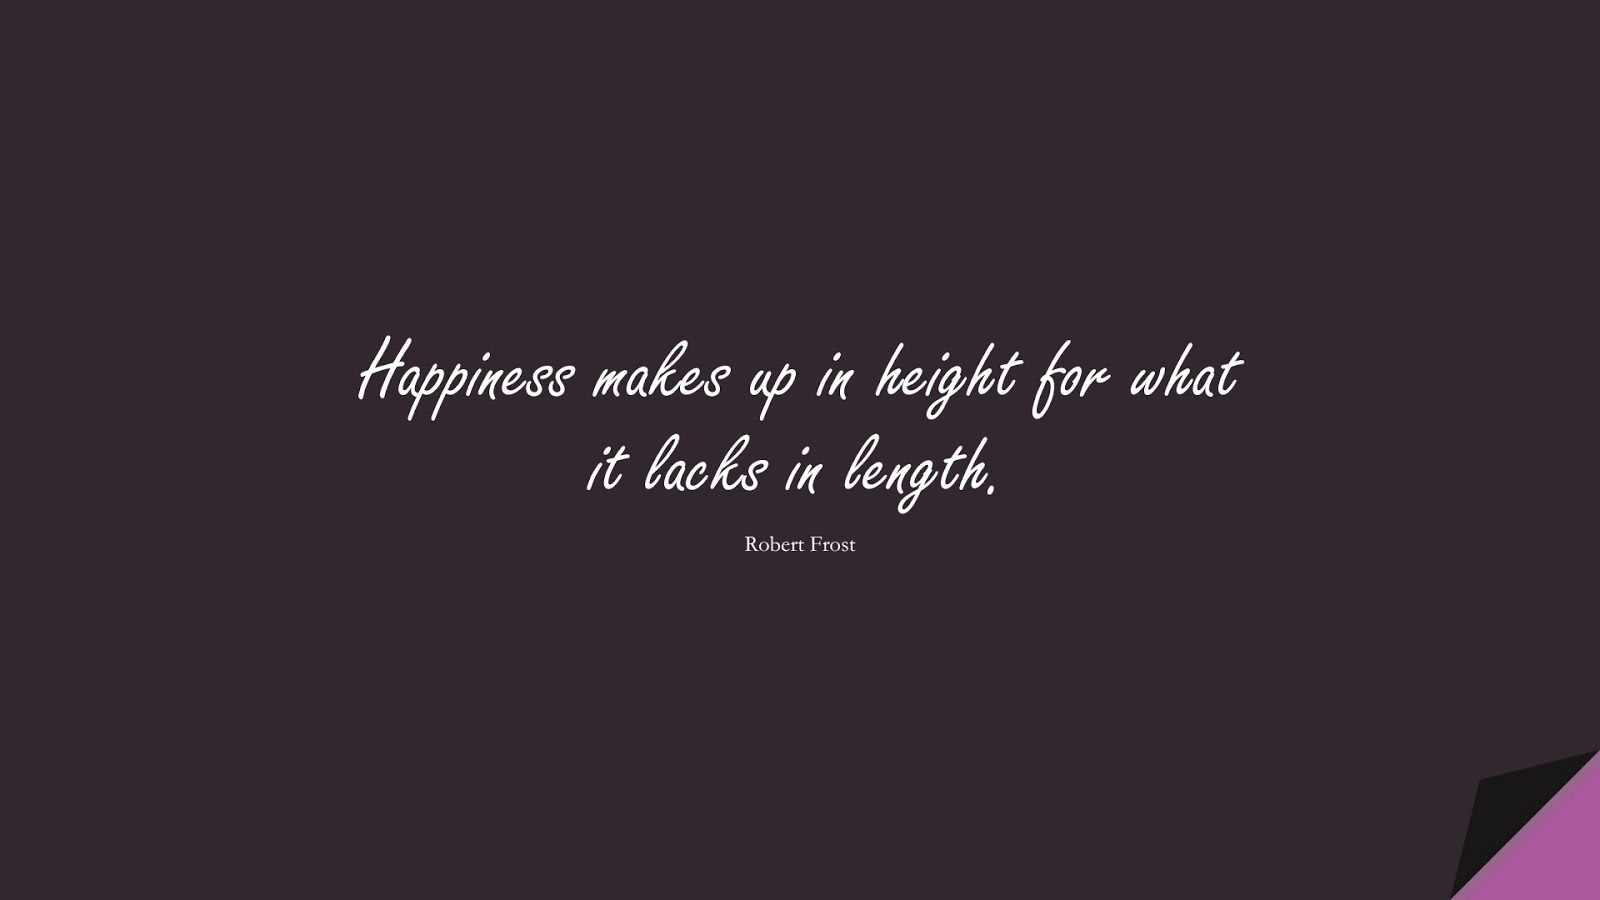 Happiness makes up in height for what it lacks in length. (Robert Frost);  #HappinessQuotes